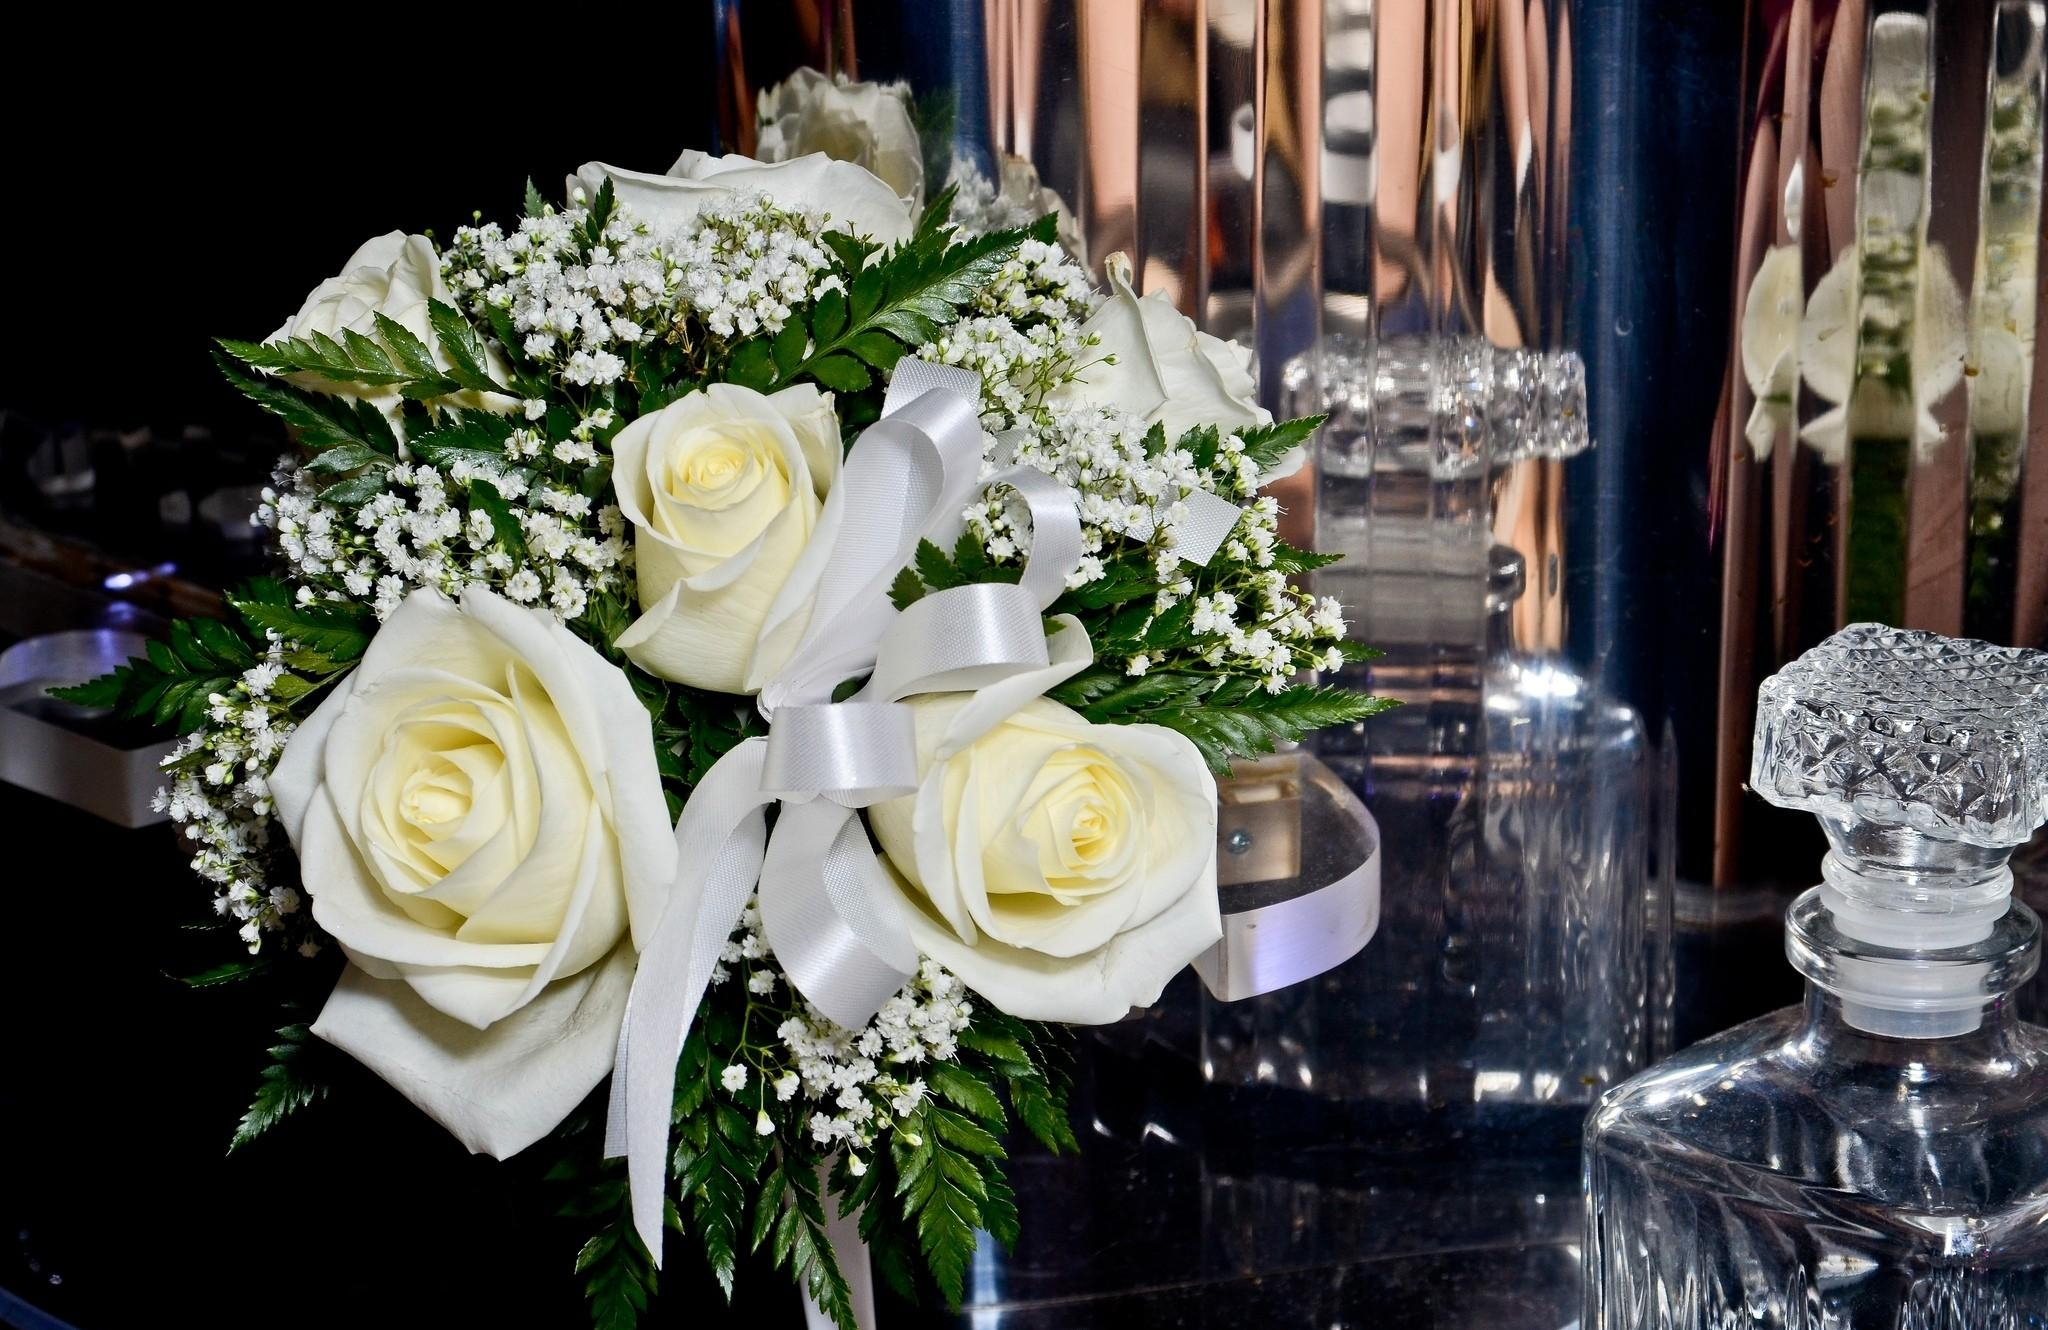 85679 download wallpaper Flowers, Roses, Bouquet, Gypsophilus, Gipsophile, Tape, Crystal screensavers and pictures for free